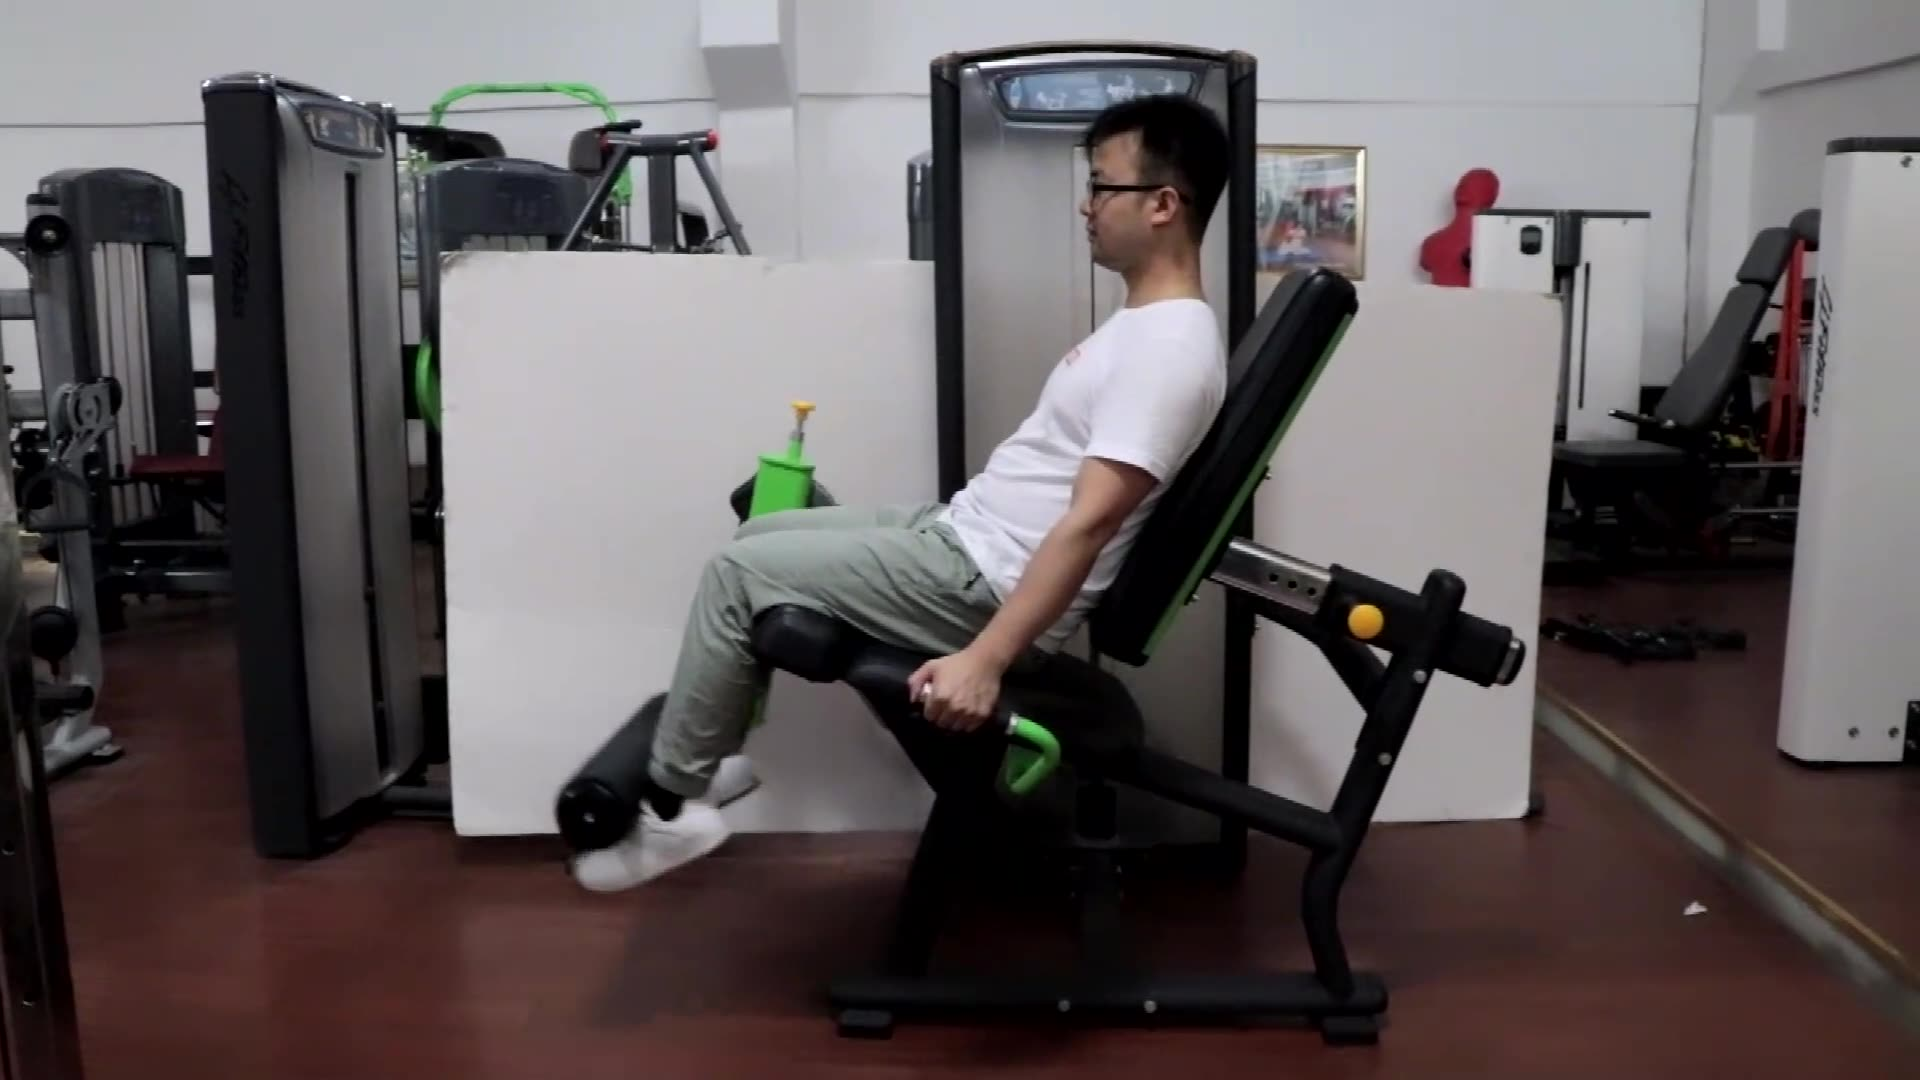 Bodybuilding exercises commercial gym fitness equipment india seated leg extension leg curl shaper machine